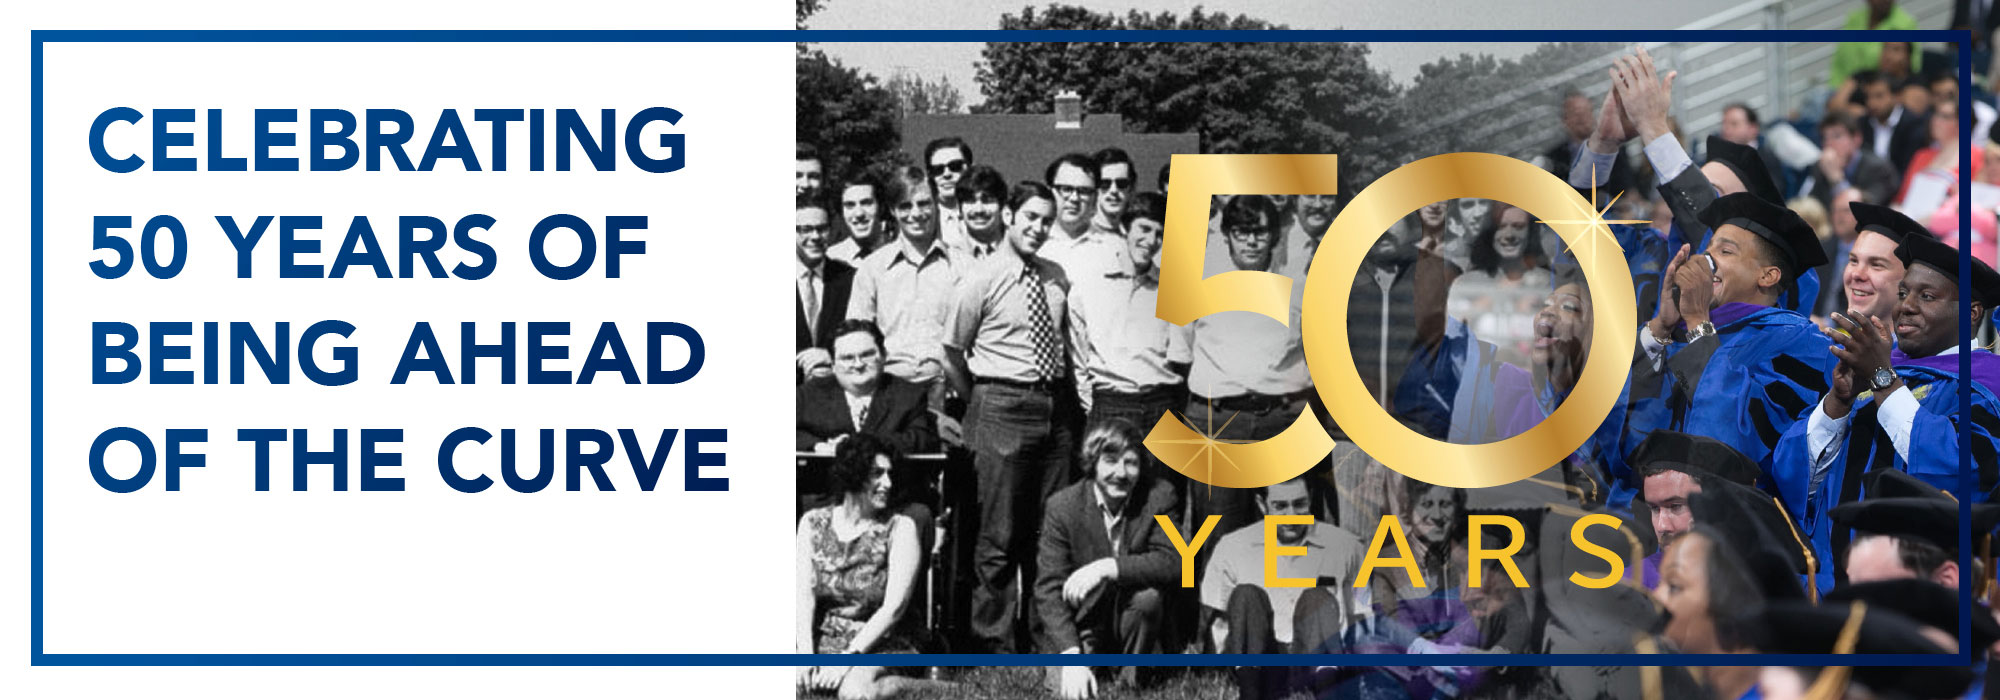 Celebrating 50 Years of Being Ahead of the Curve